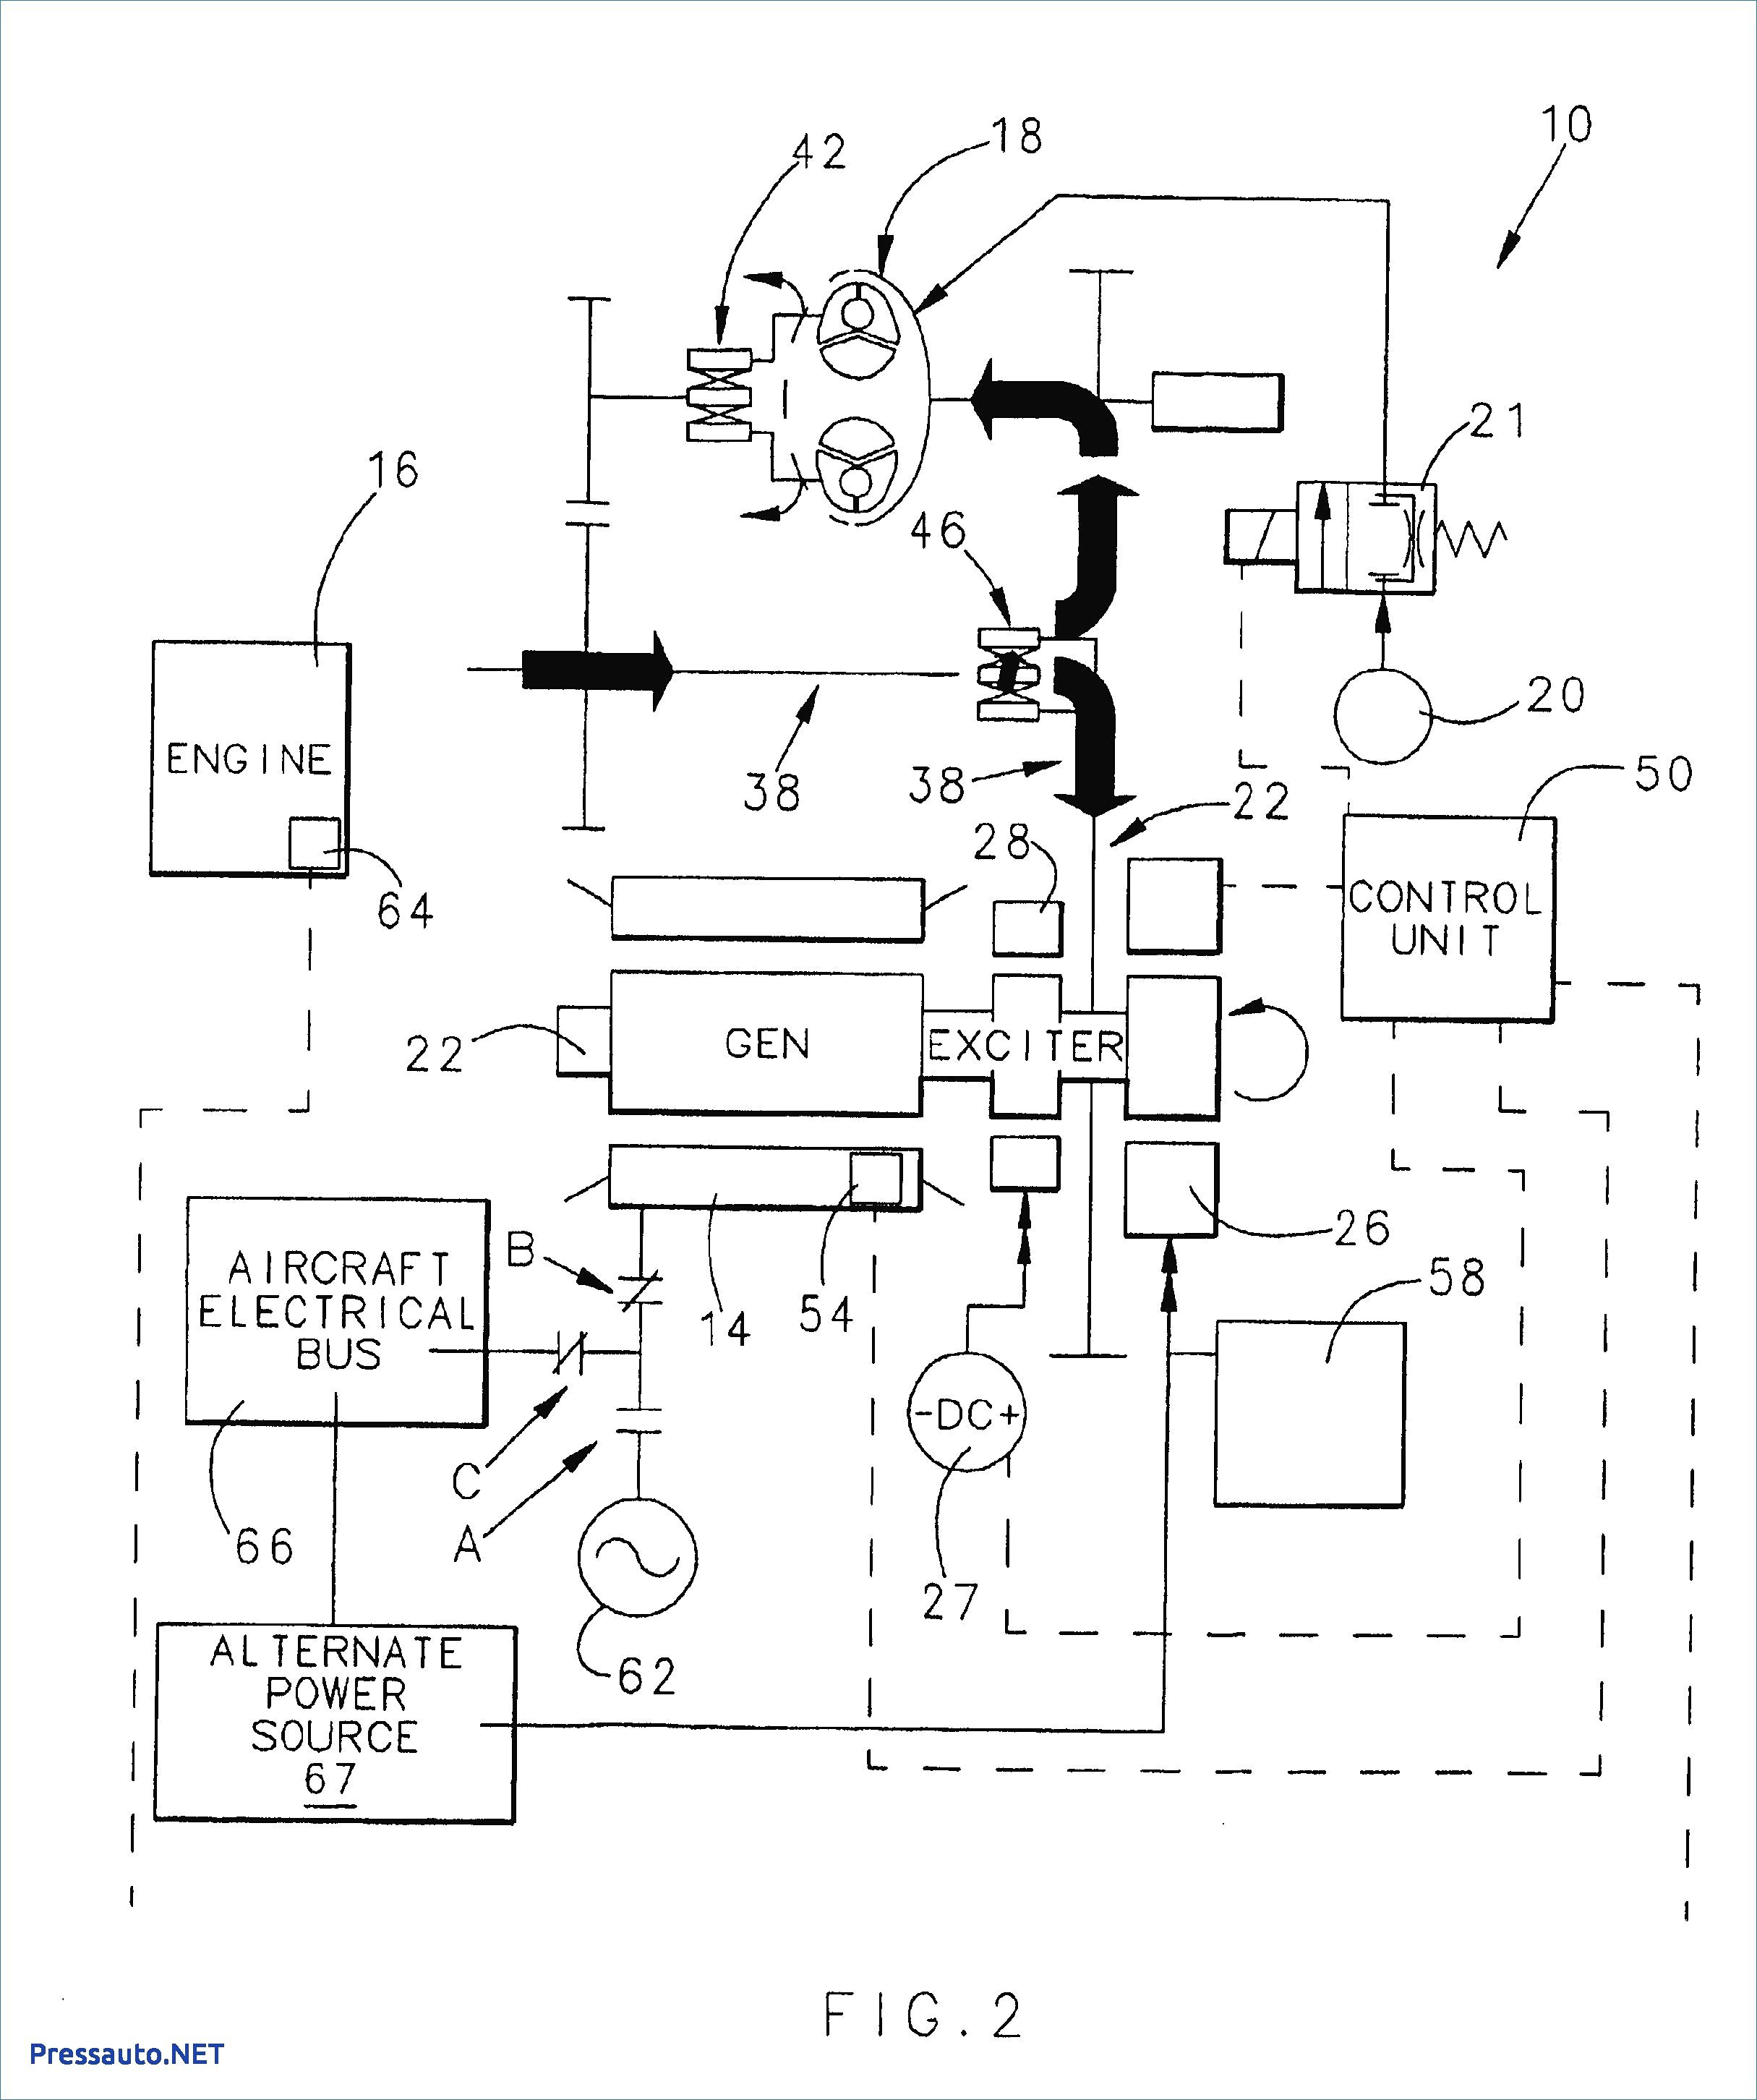 Howhit 150cc Engine Diagram 150cc Engine Diagram Pdf Wiring Wiring Diagrams Instructions Of Howhit 150cc Engine Diagram 50 Best Image Gy6 Go Kart Wiring Diagram Diagram Inspiration